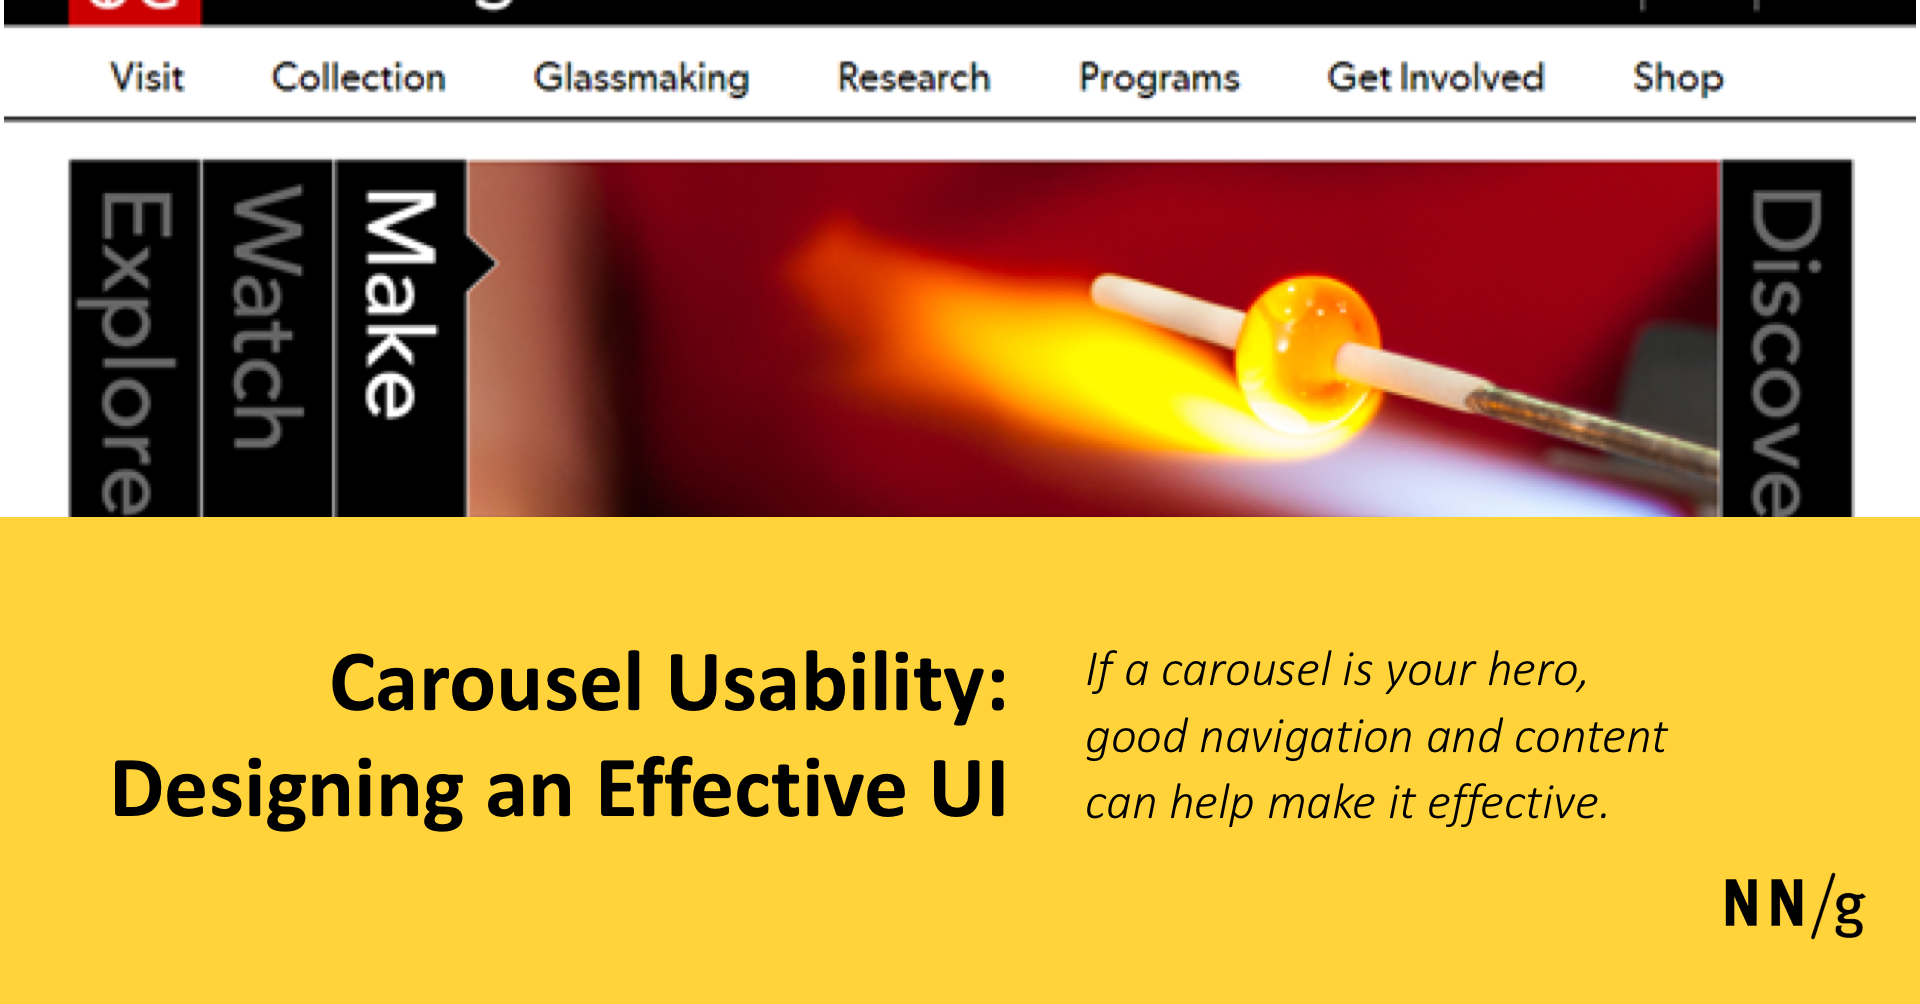 Carousel Usability: Designing an Effective UI for Websites with